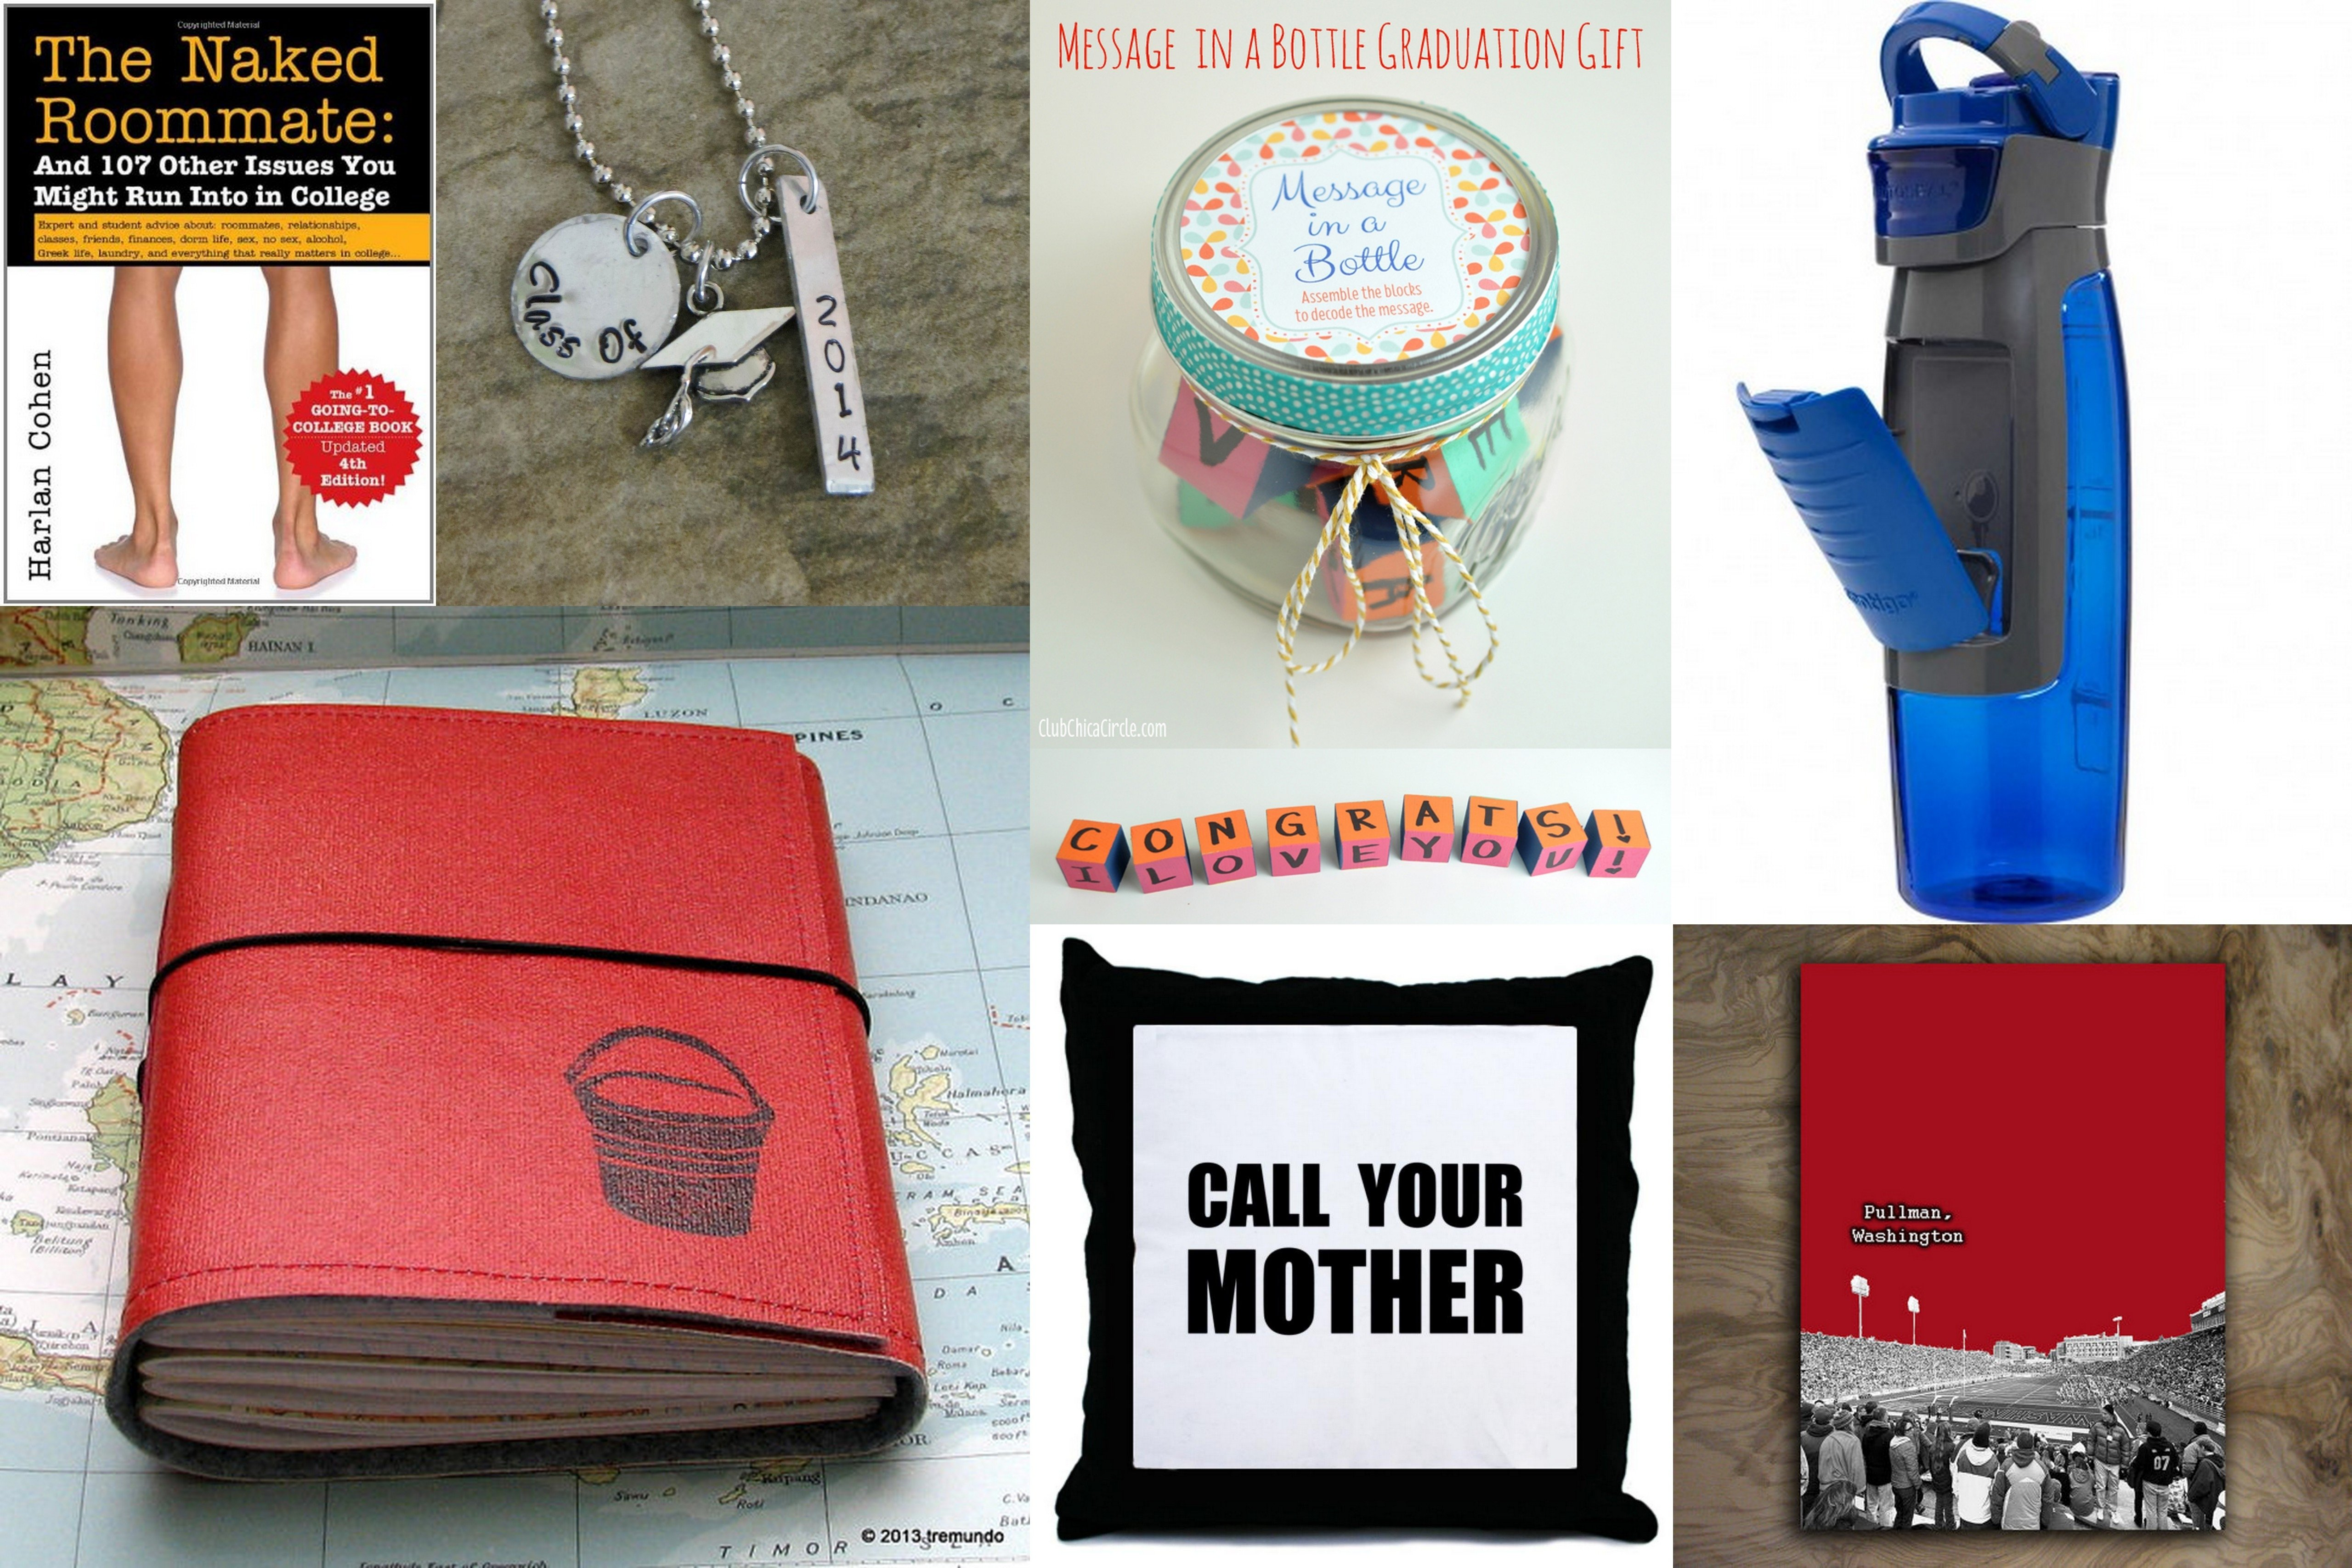 10 Spectacular Gift Ideas For College Boys 10 unique graduation gifts for 2014 parentmap 7 2020